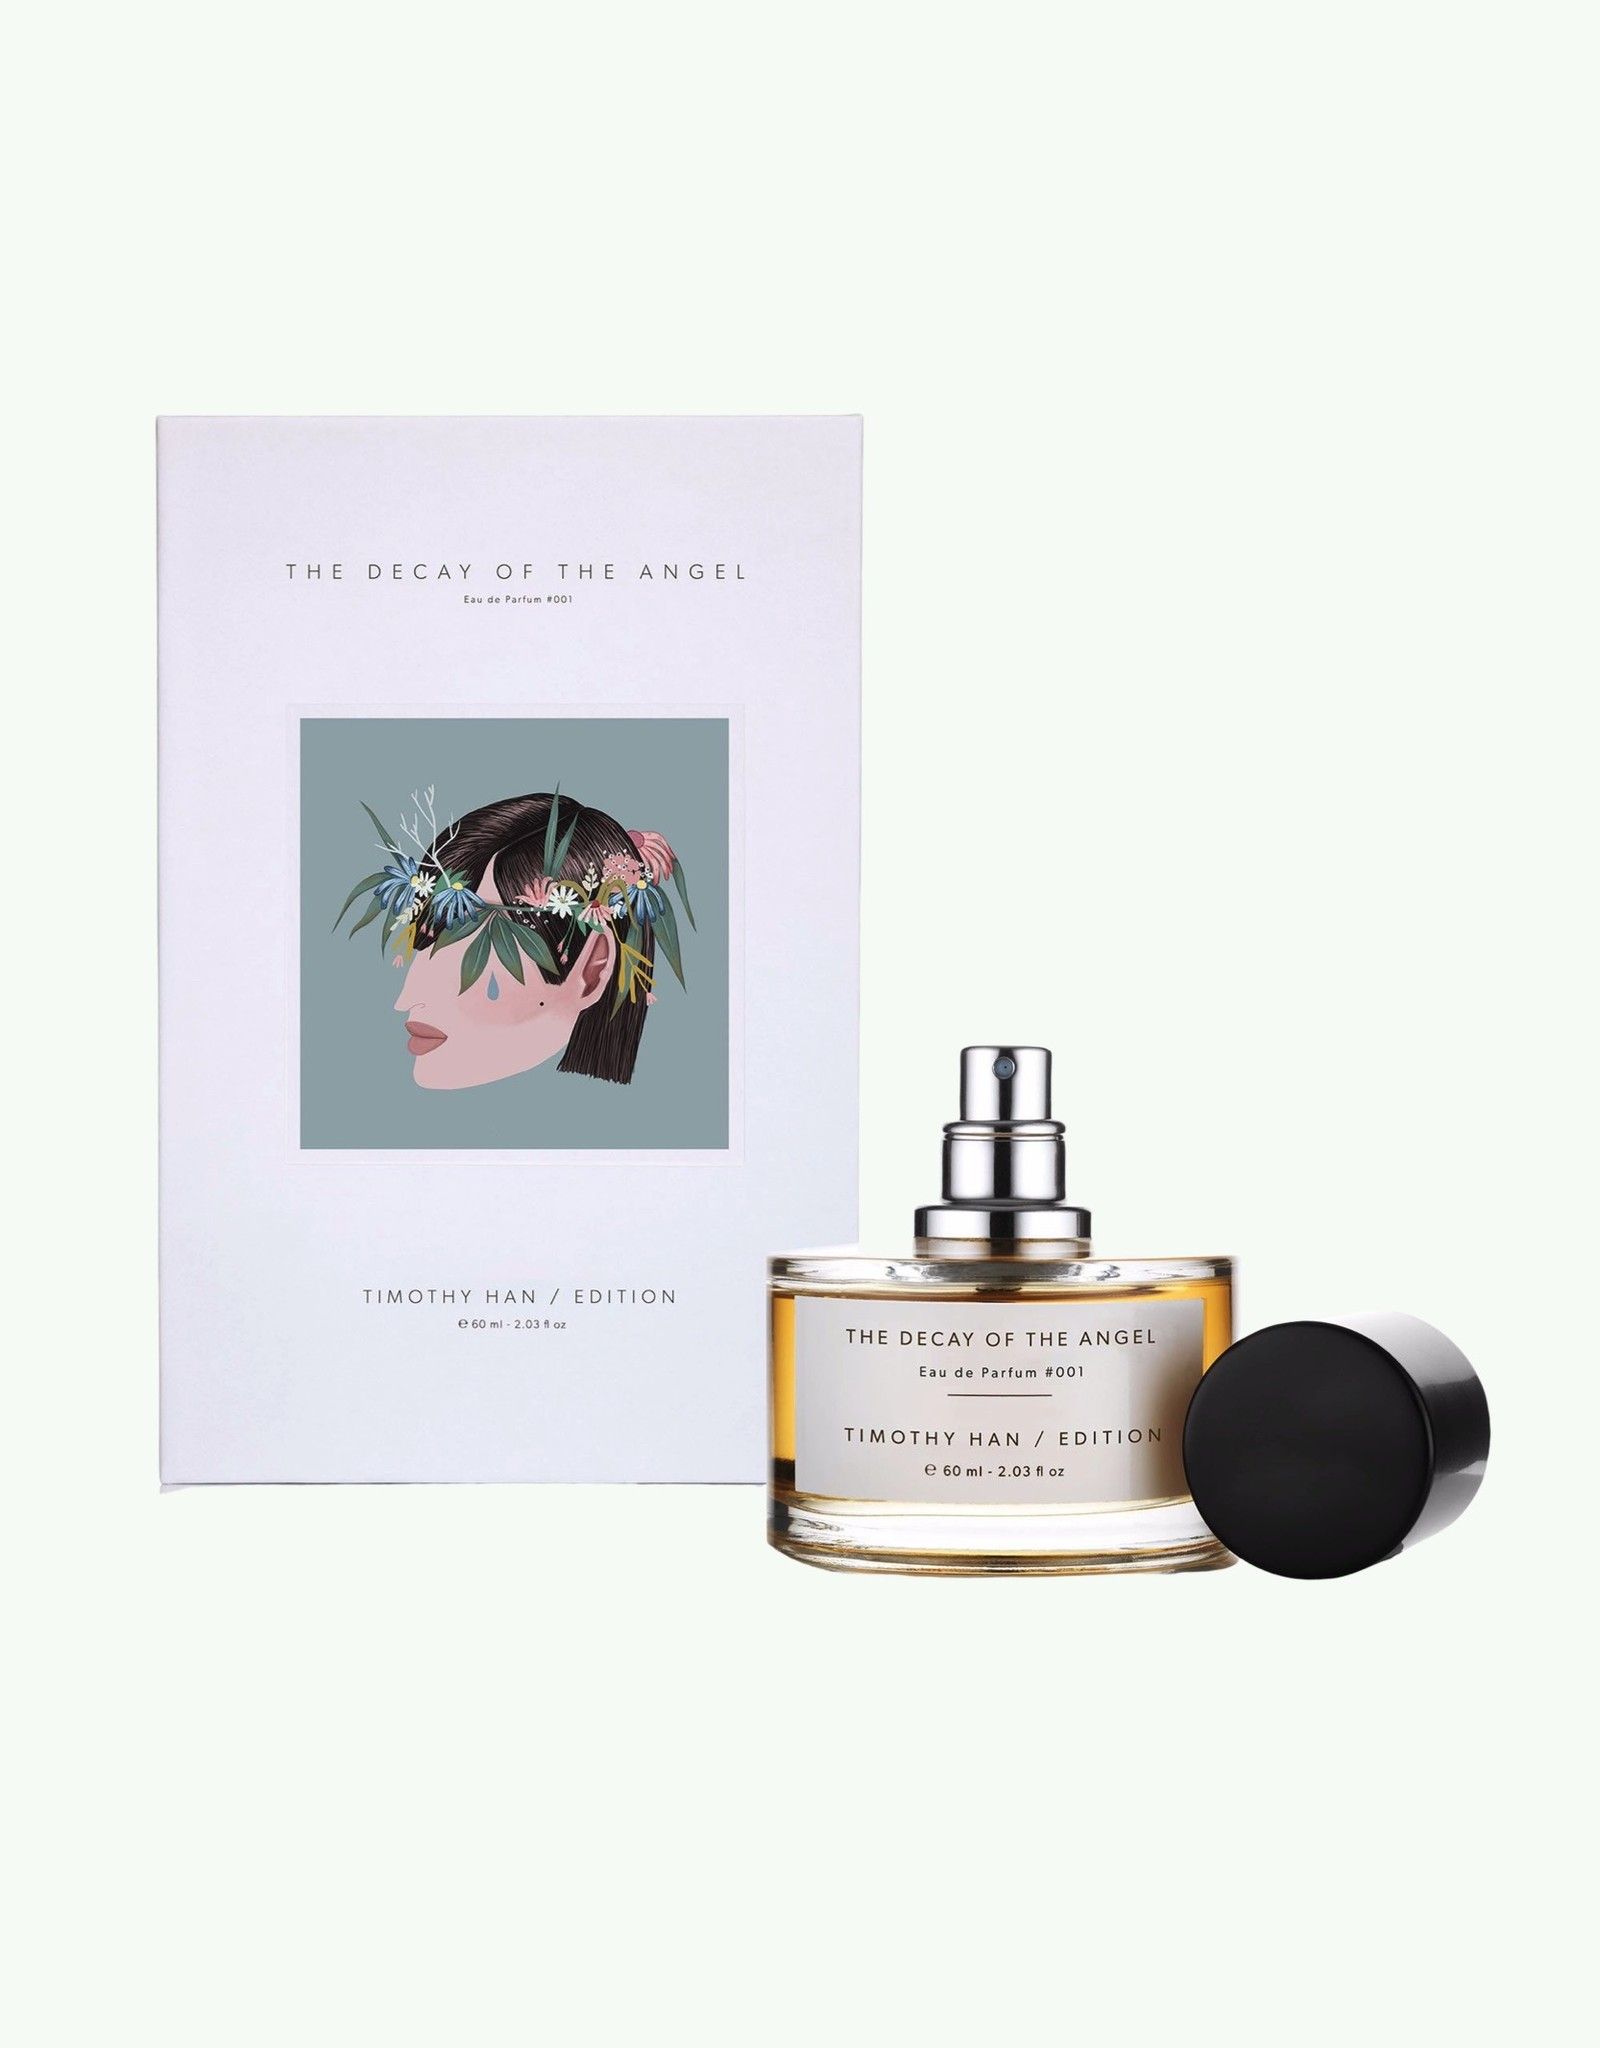 Timothy Han / Edition Timothy Han / Edition - The Decay of the Angel - Eau de Parfum